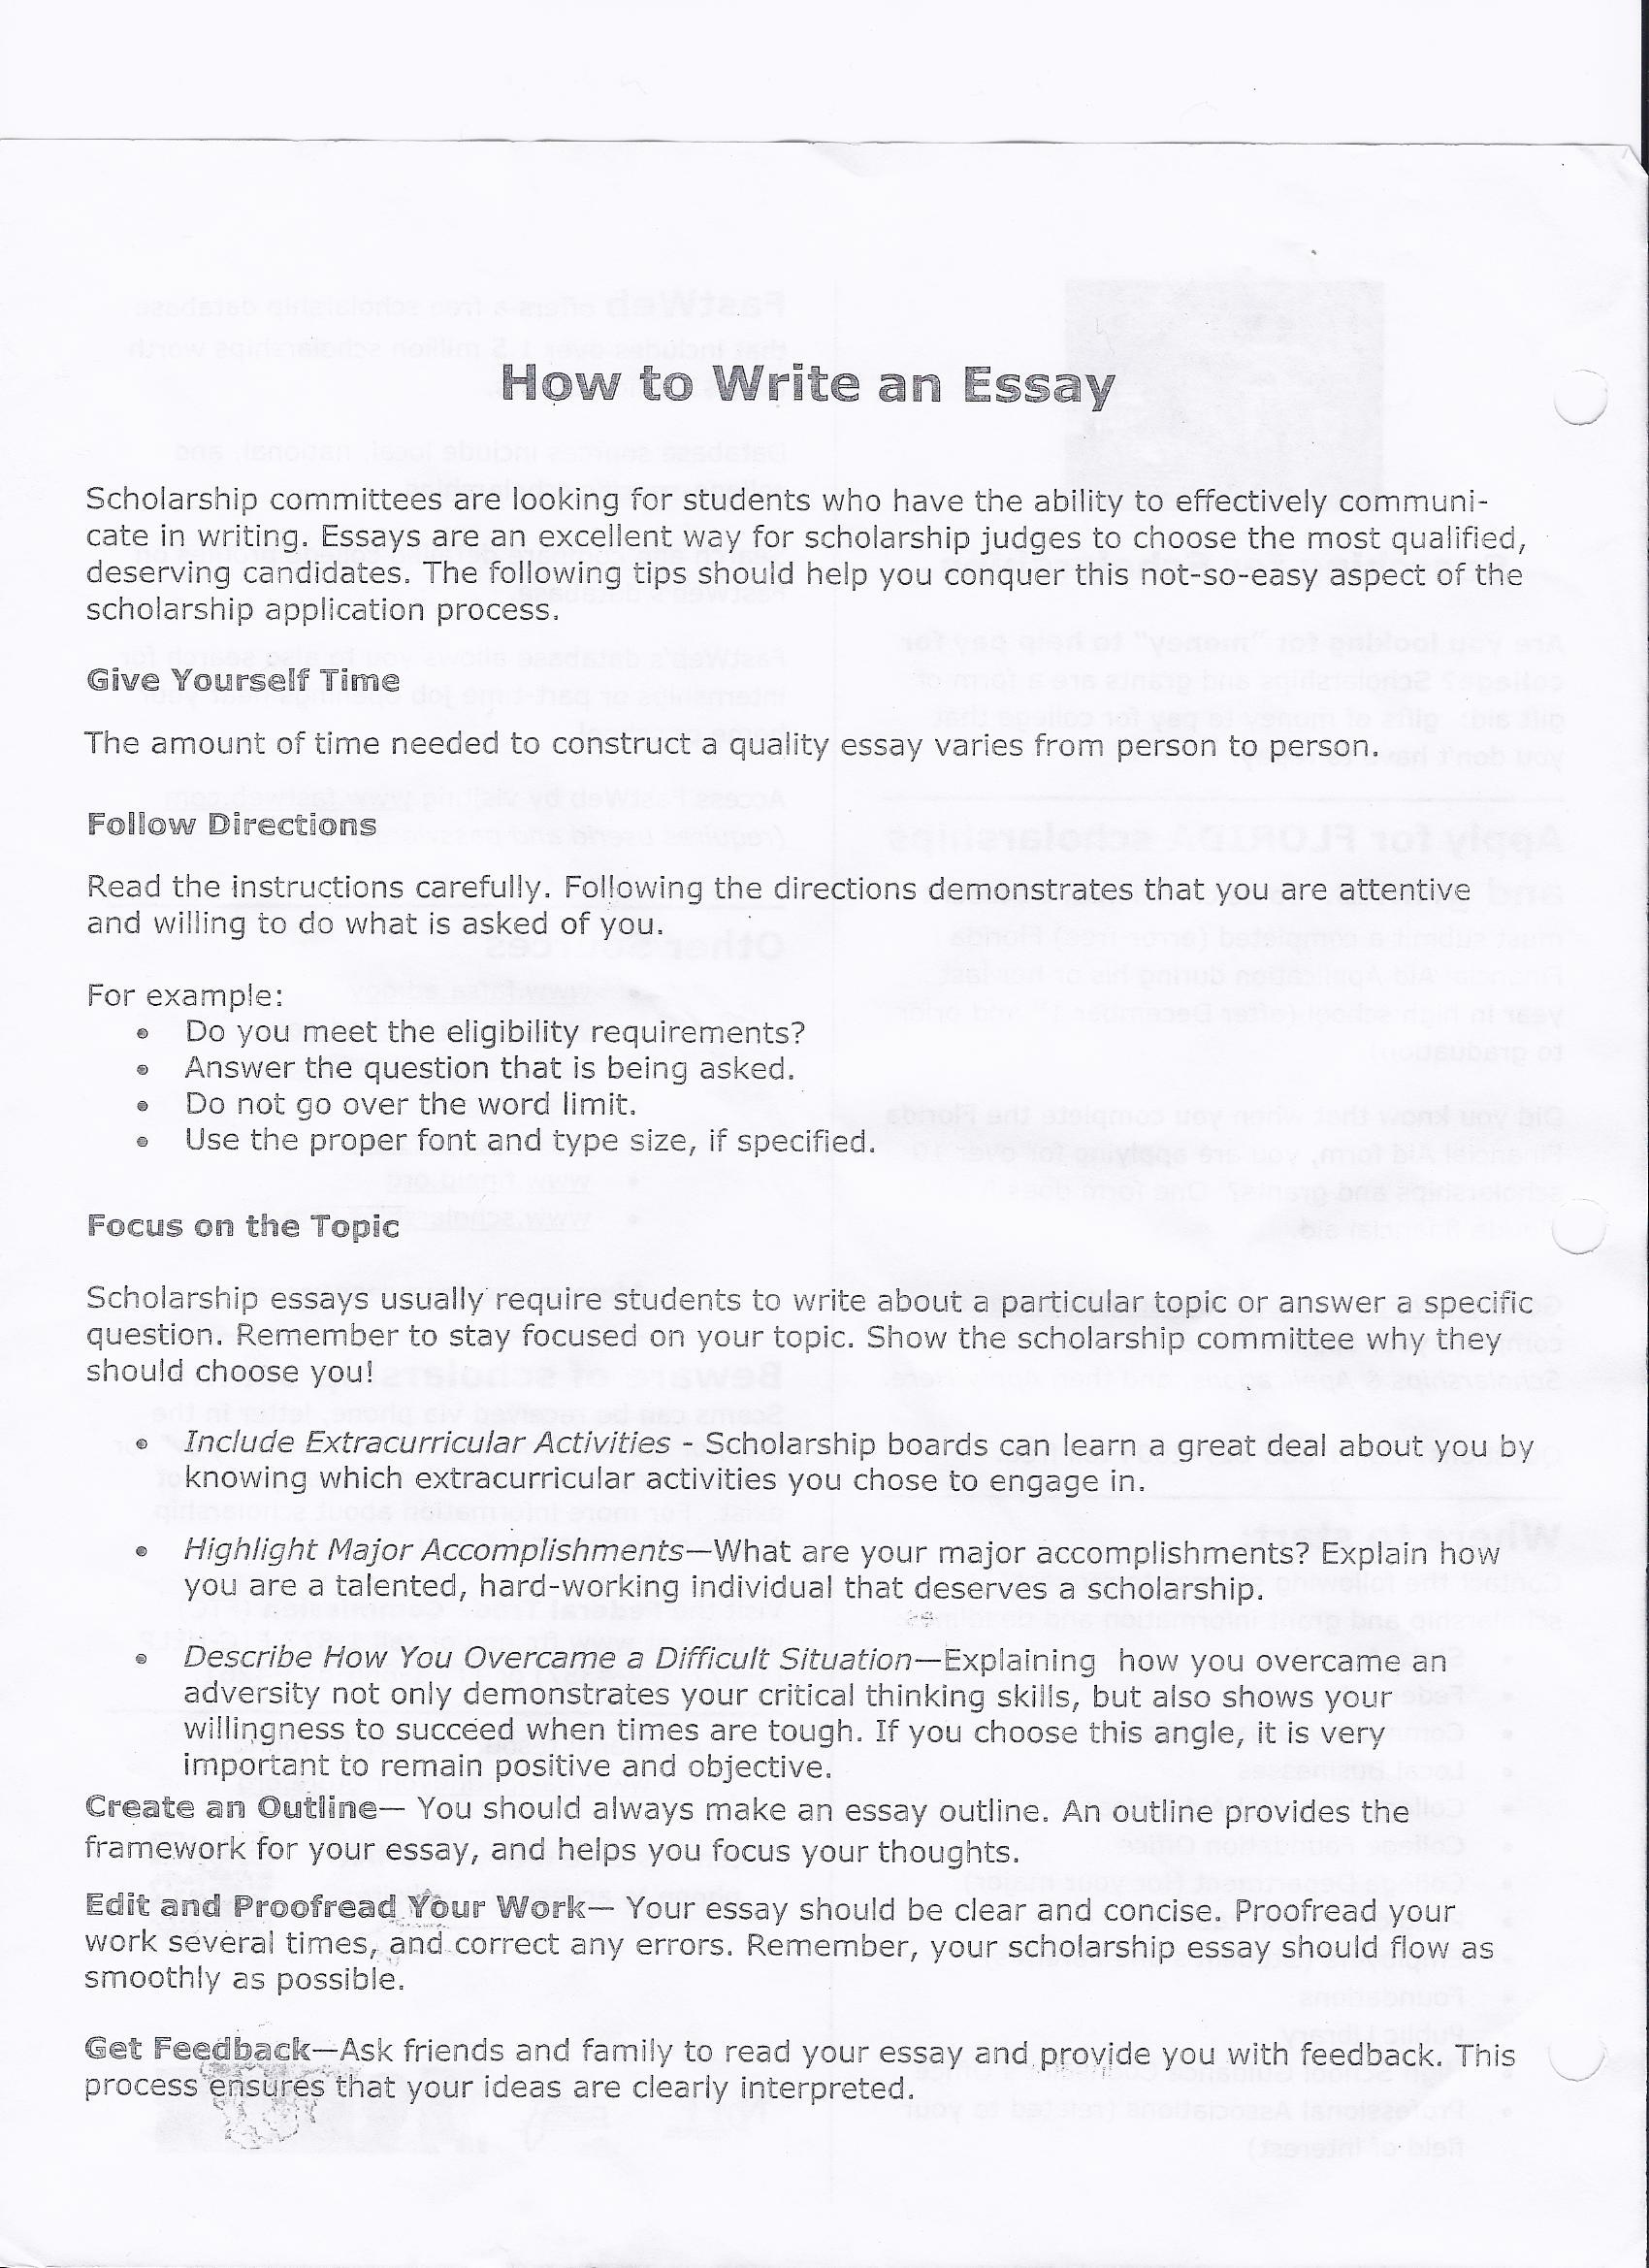 desdemona essay othello kills desdemona essay essay abortion a  collage essay collage essay collage essay jonathon lay personal collage essaycollage essay buy key stage geography